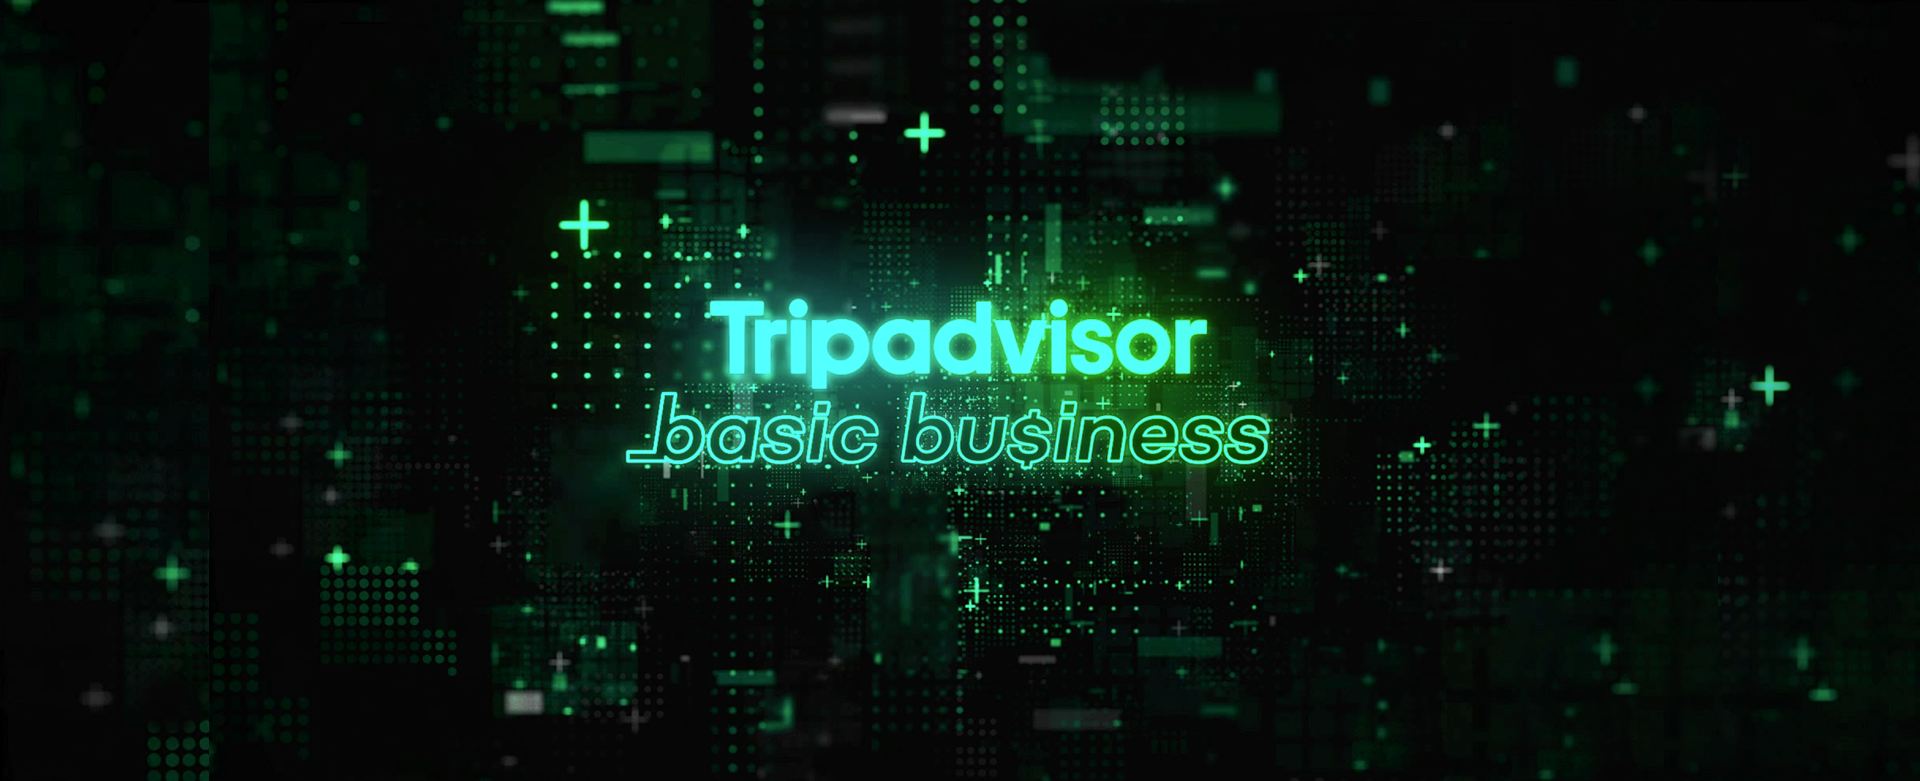 Tripadvisor Basic Business